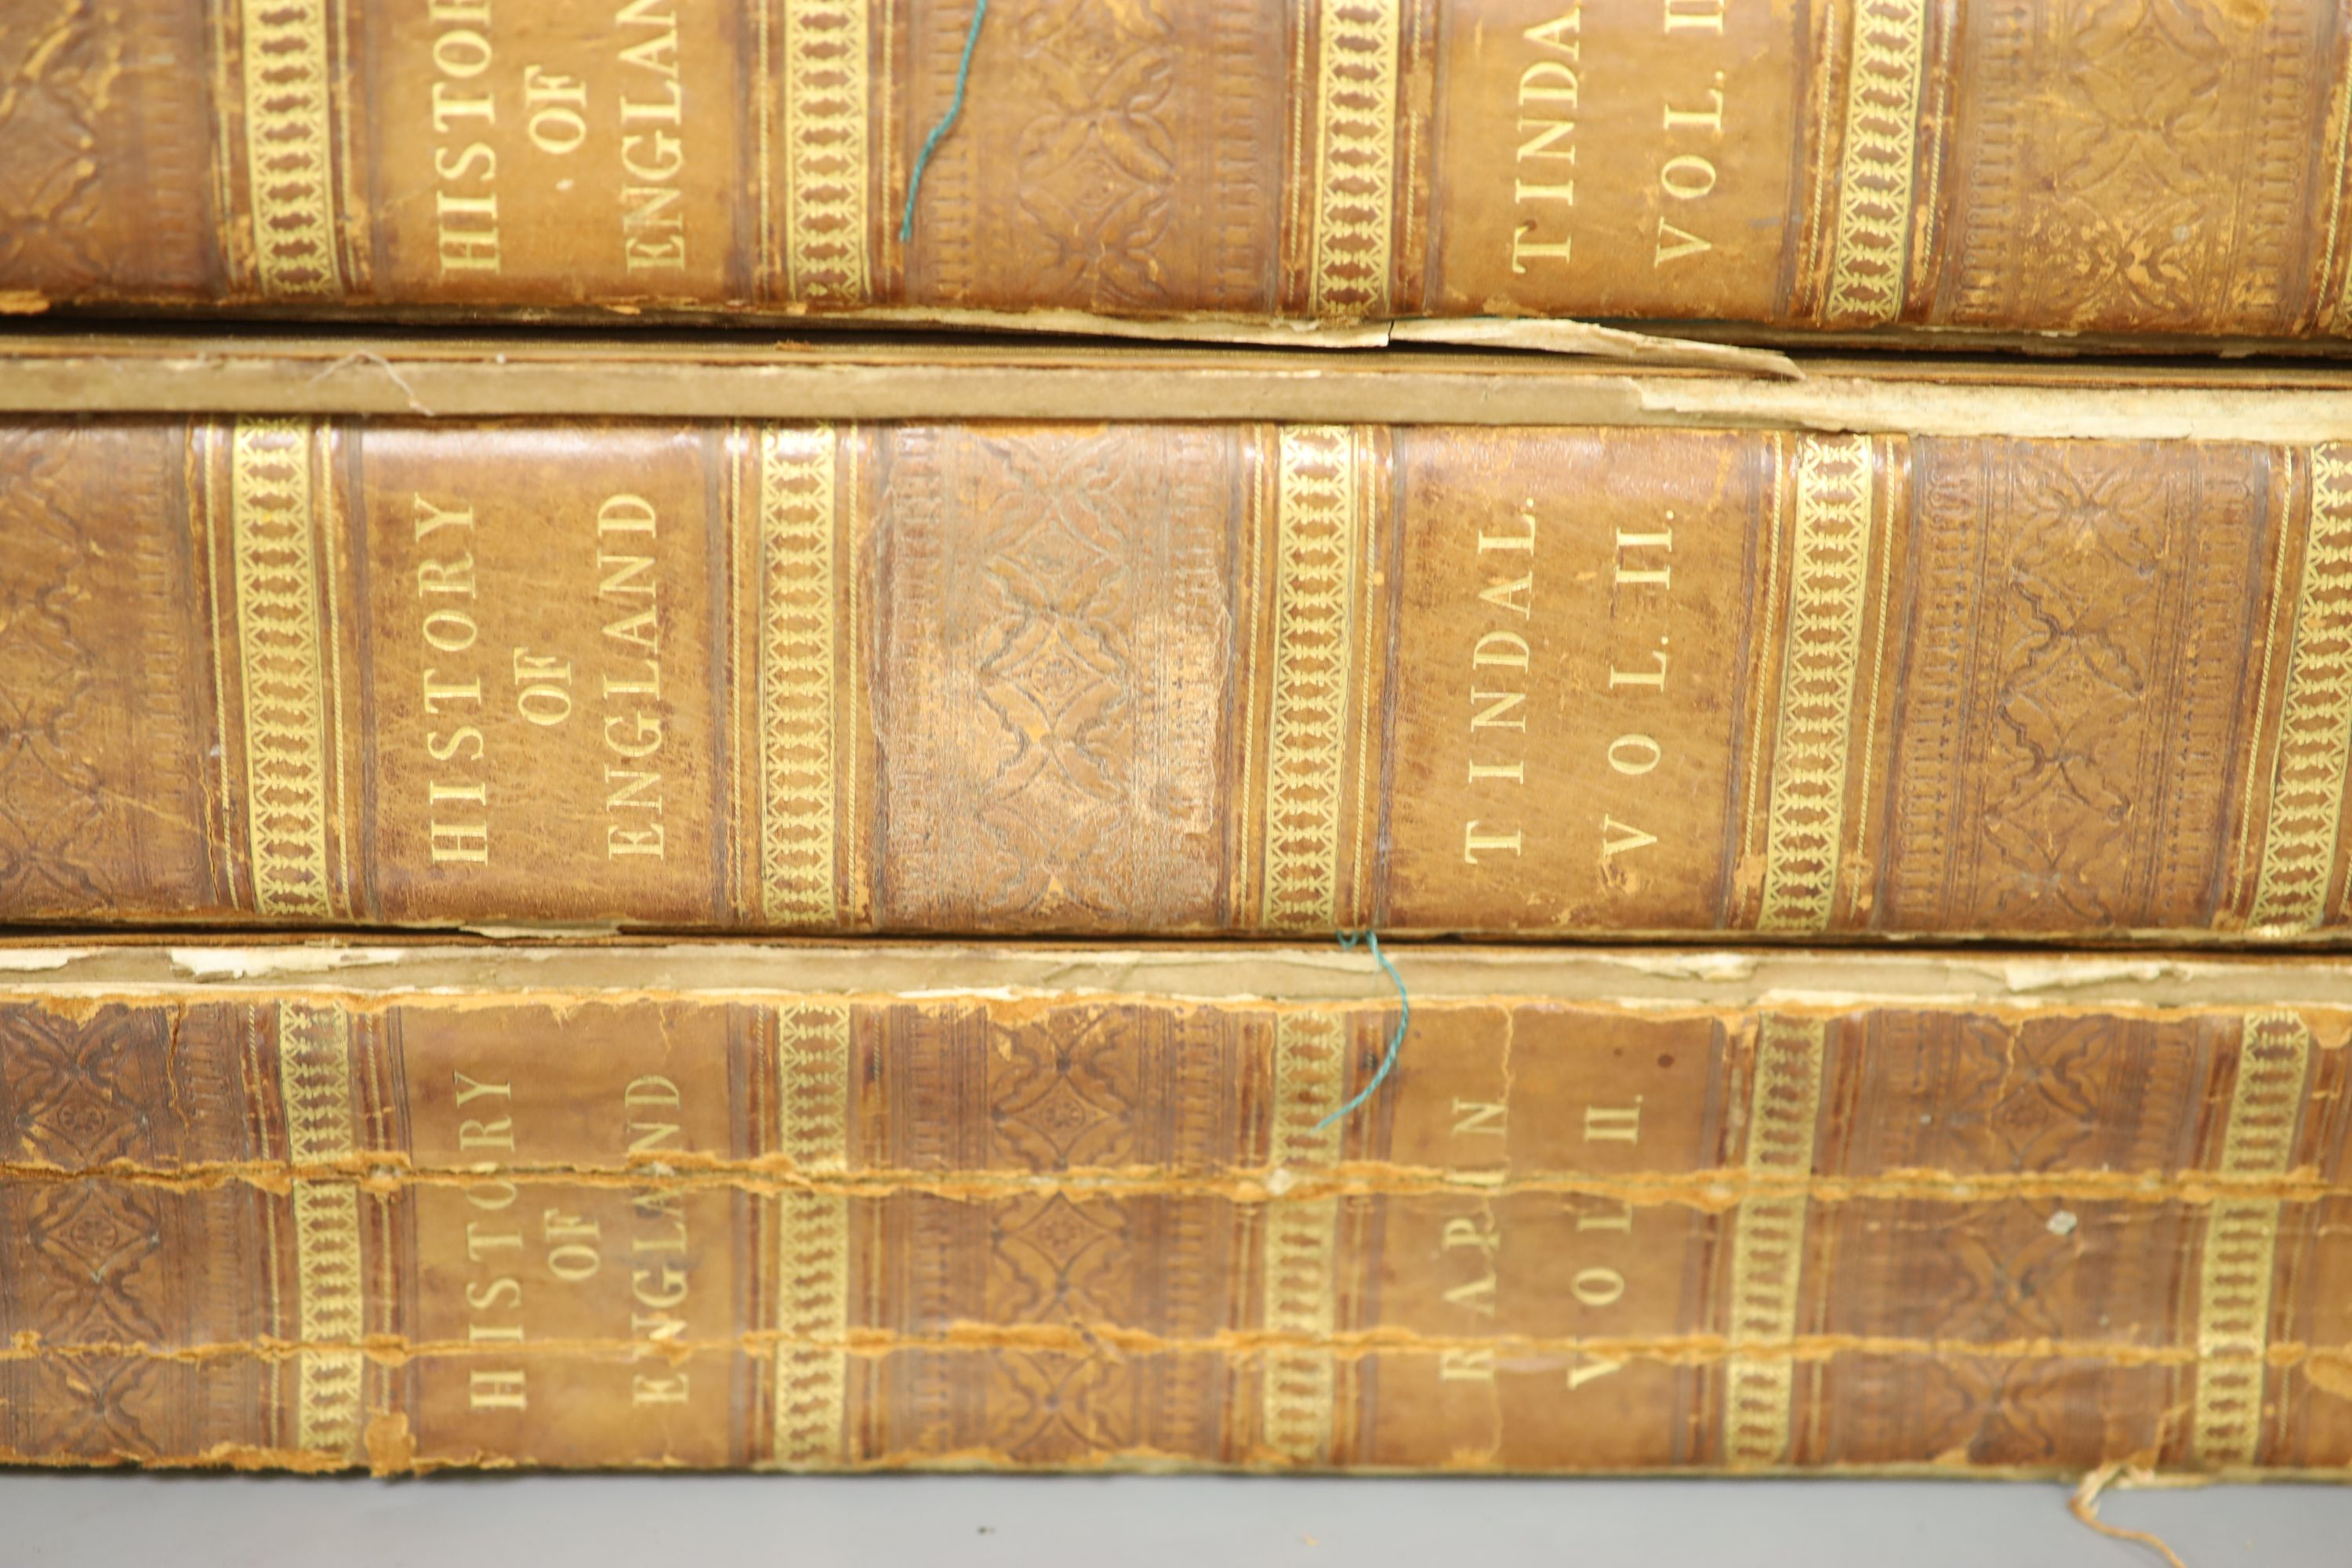 History of England, Tindal 4 vols, quarto, plates removed, boards detached - Image 3 of 5